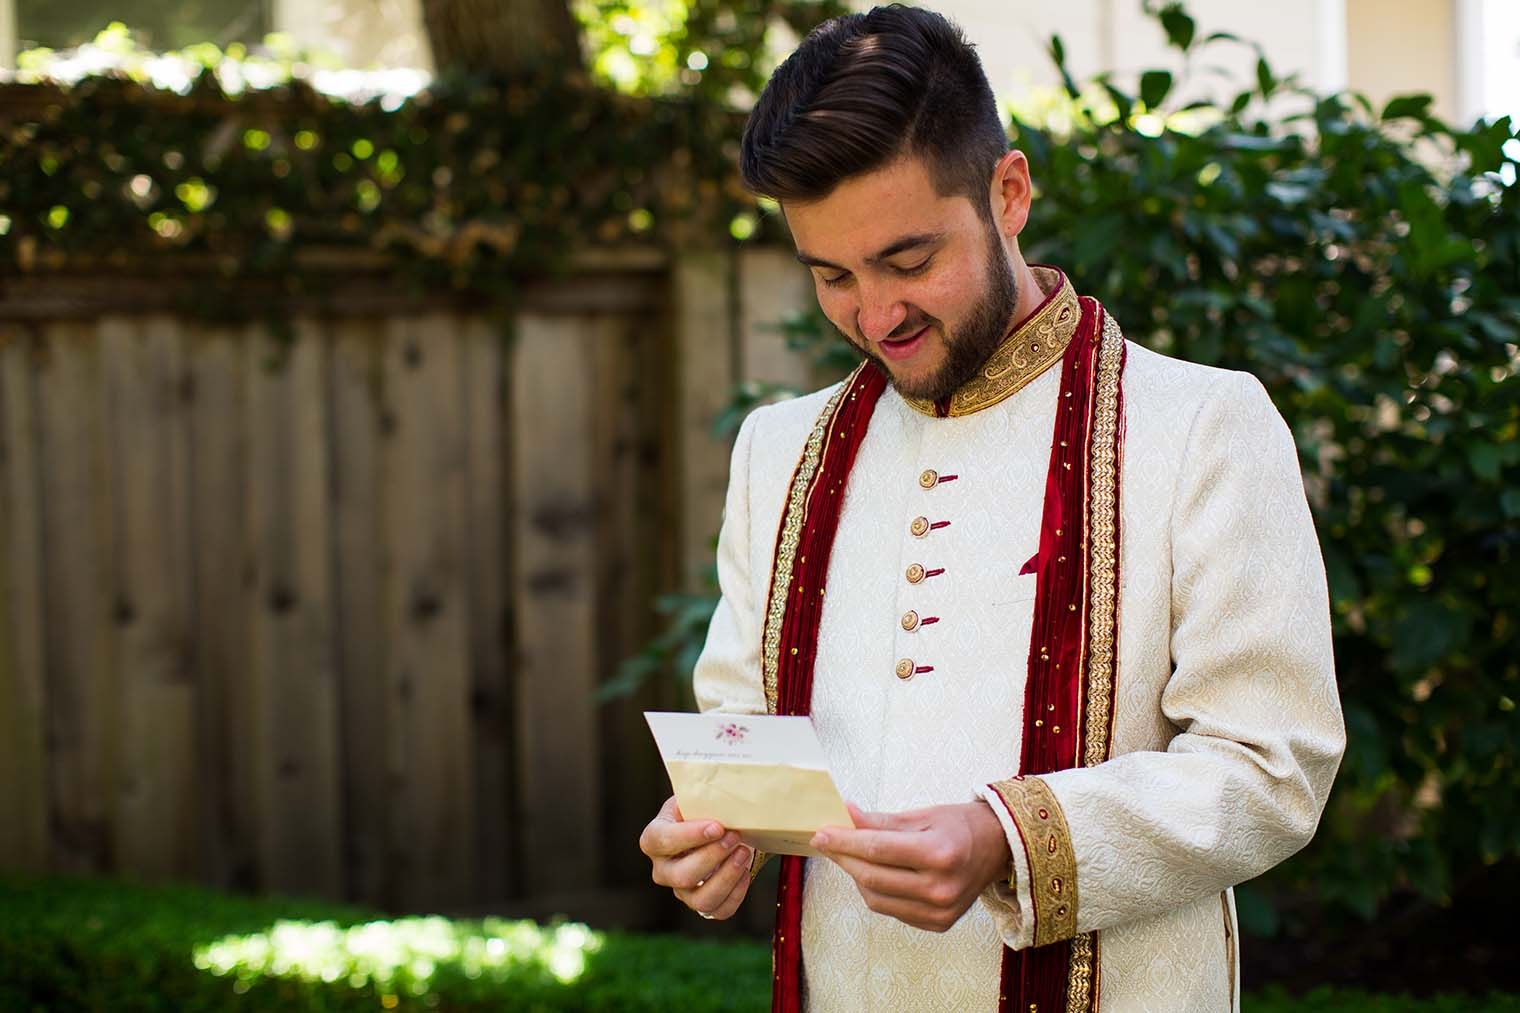 groom reading gift note from bride in Napa